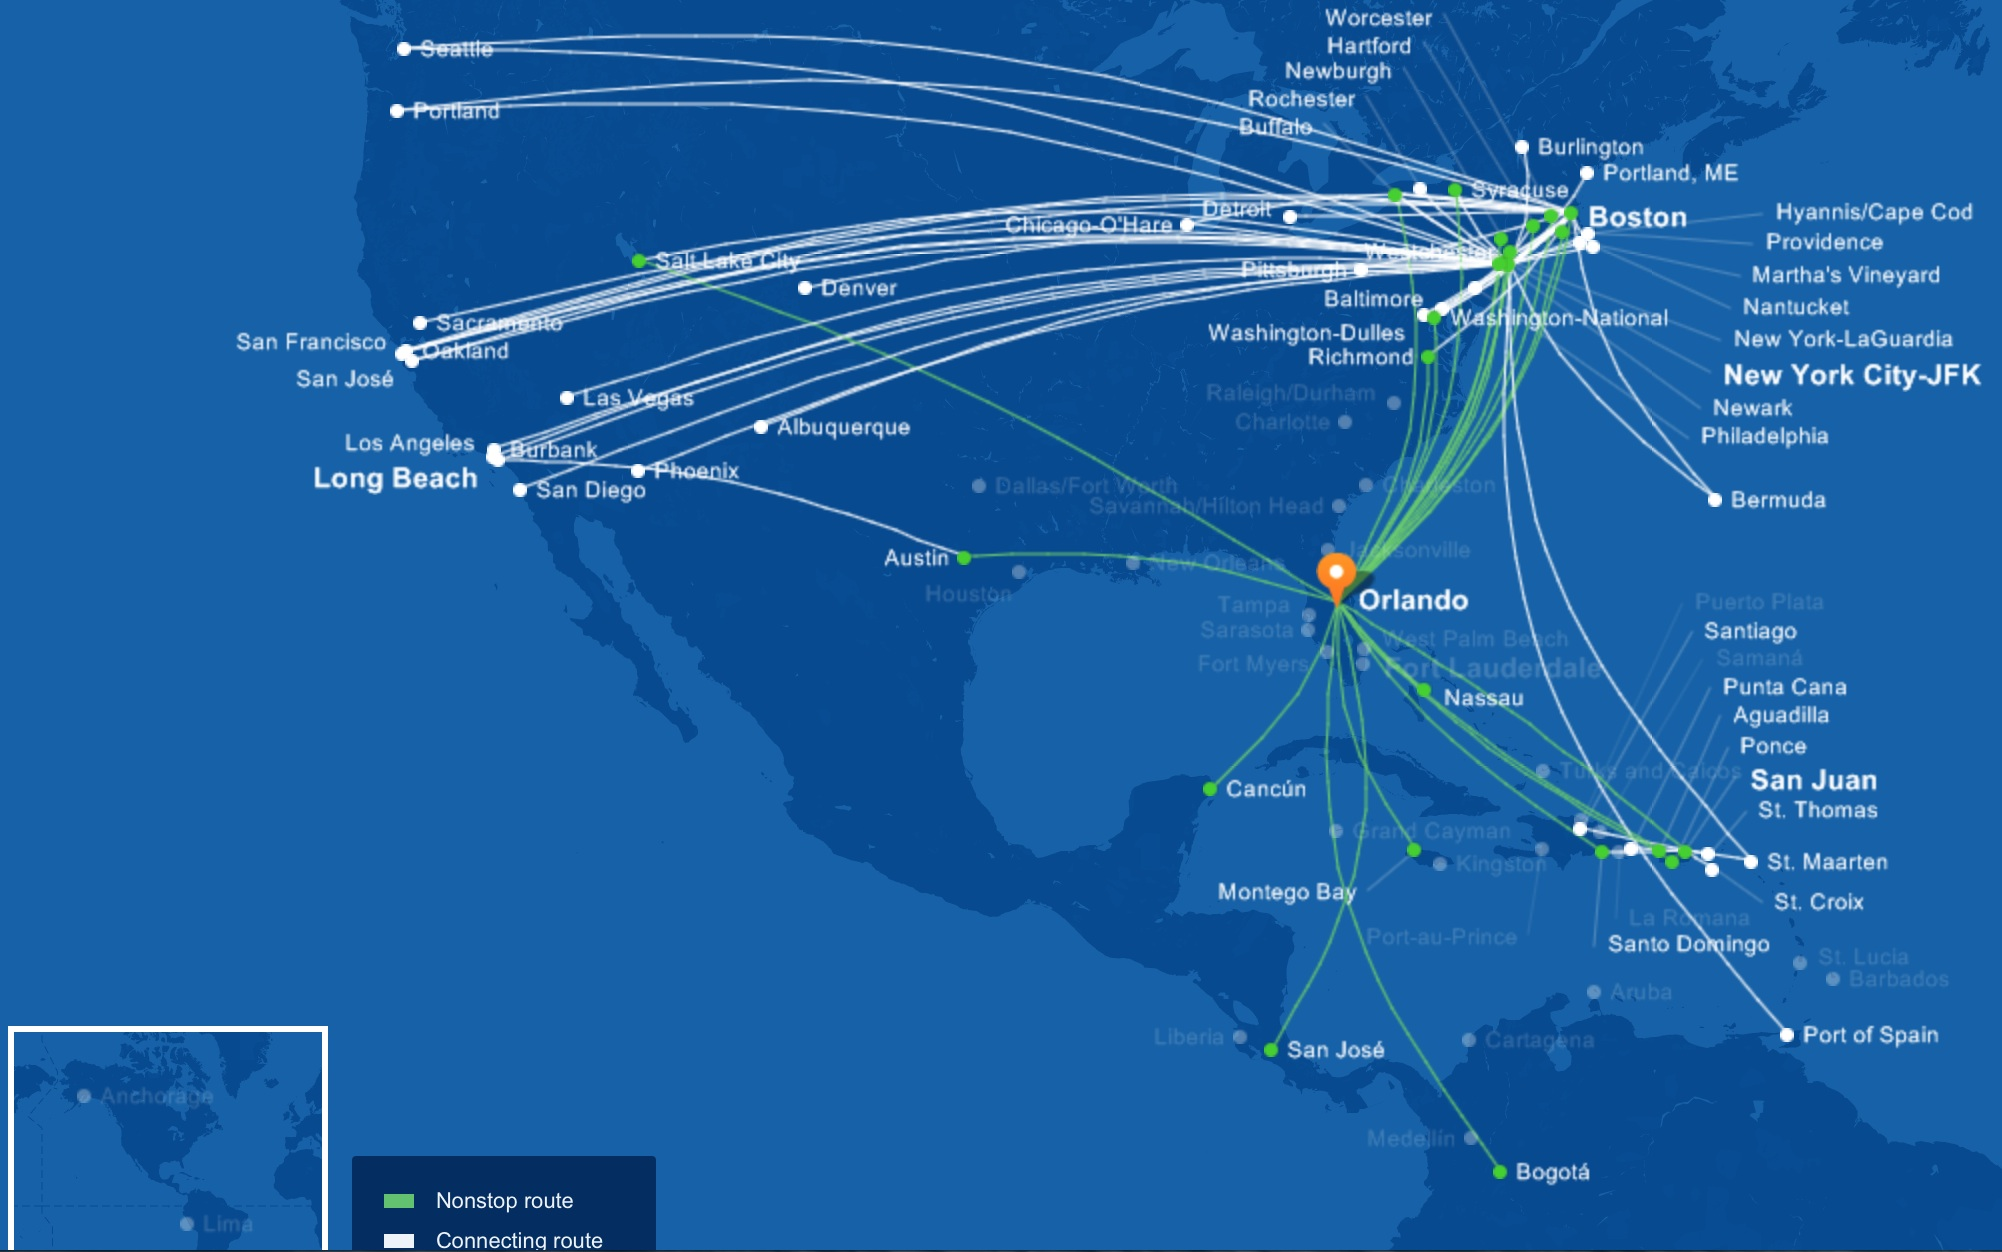 singapore direction map with Jetblue To Launch Salt Lake City Orlando Flights On November 12 on Langkawi 000003 also Singapores Lta And Itss Launch Smart Mobility 2030 besides Women Only Bathrooms In The Sky further Legoland Malaysia Location And Map furthermore Hiccup.